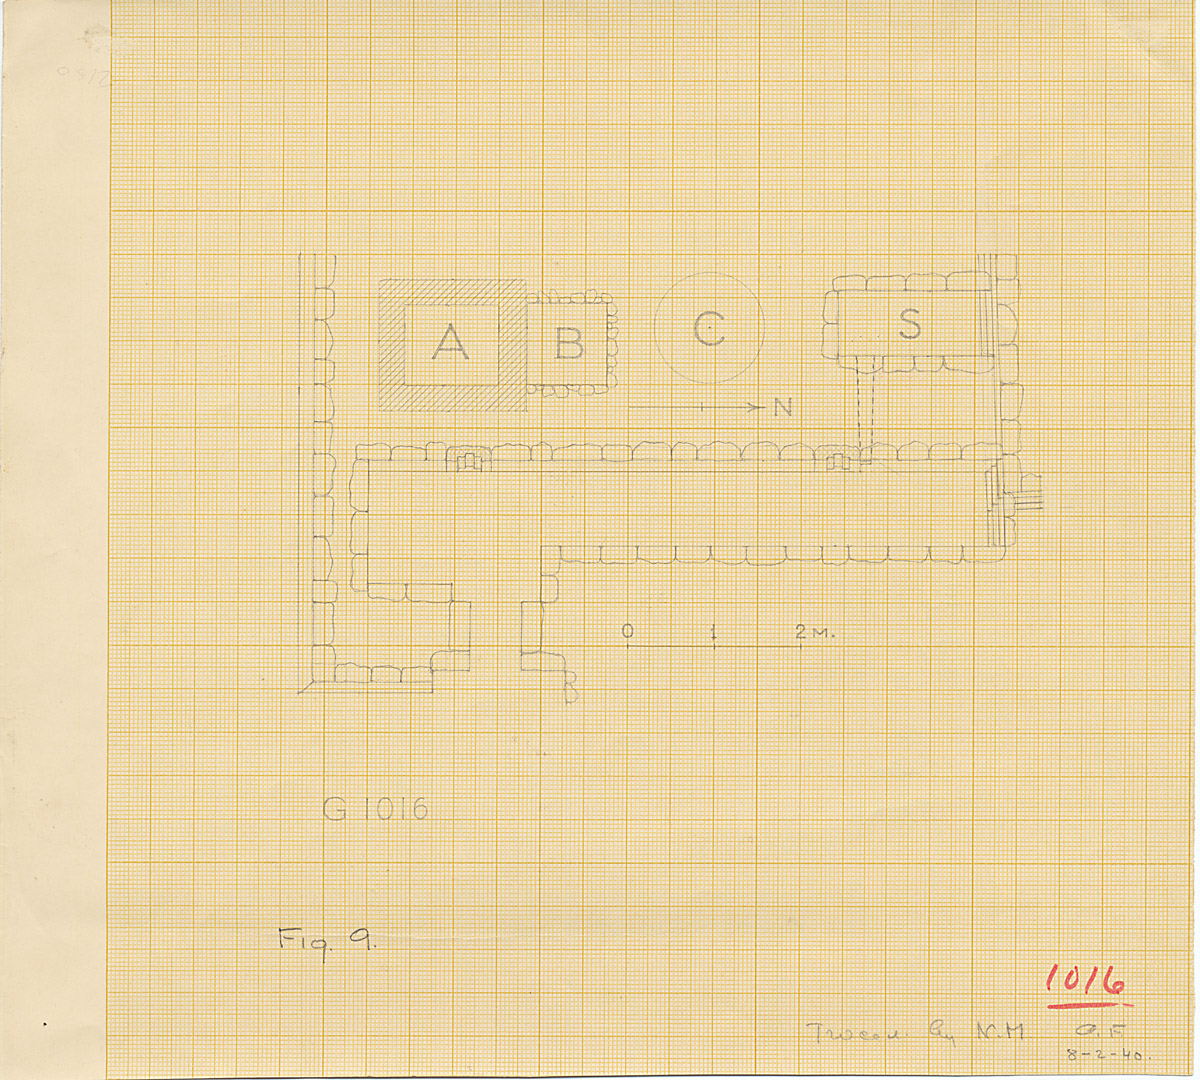 Maps and plans: G 1016, Plan (partial)